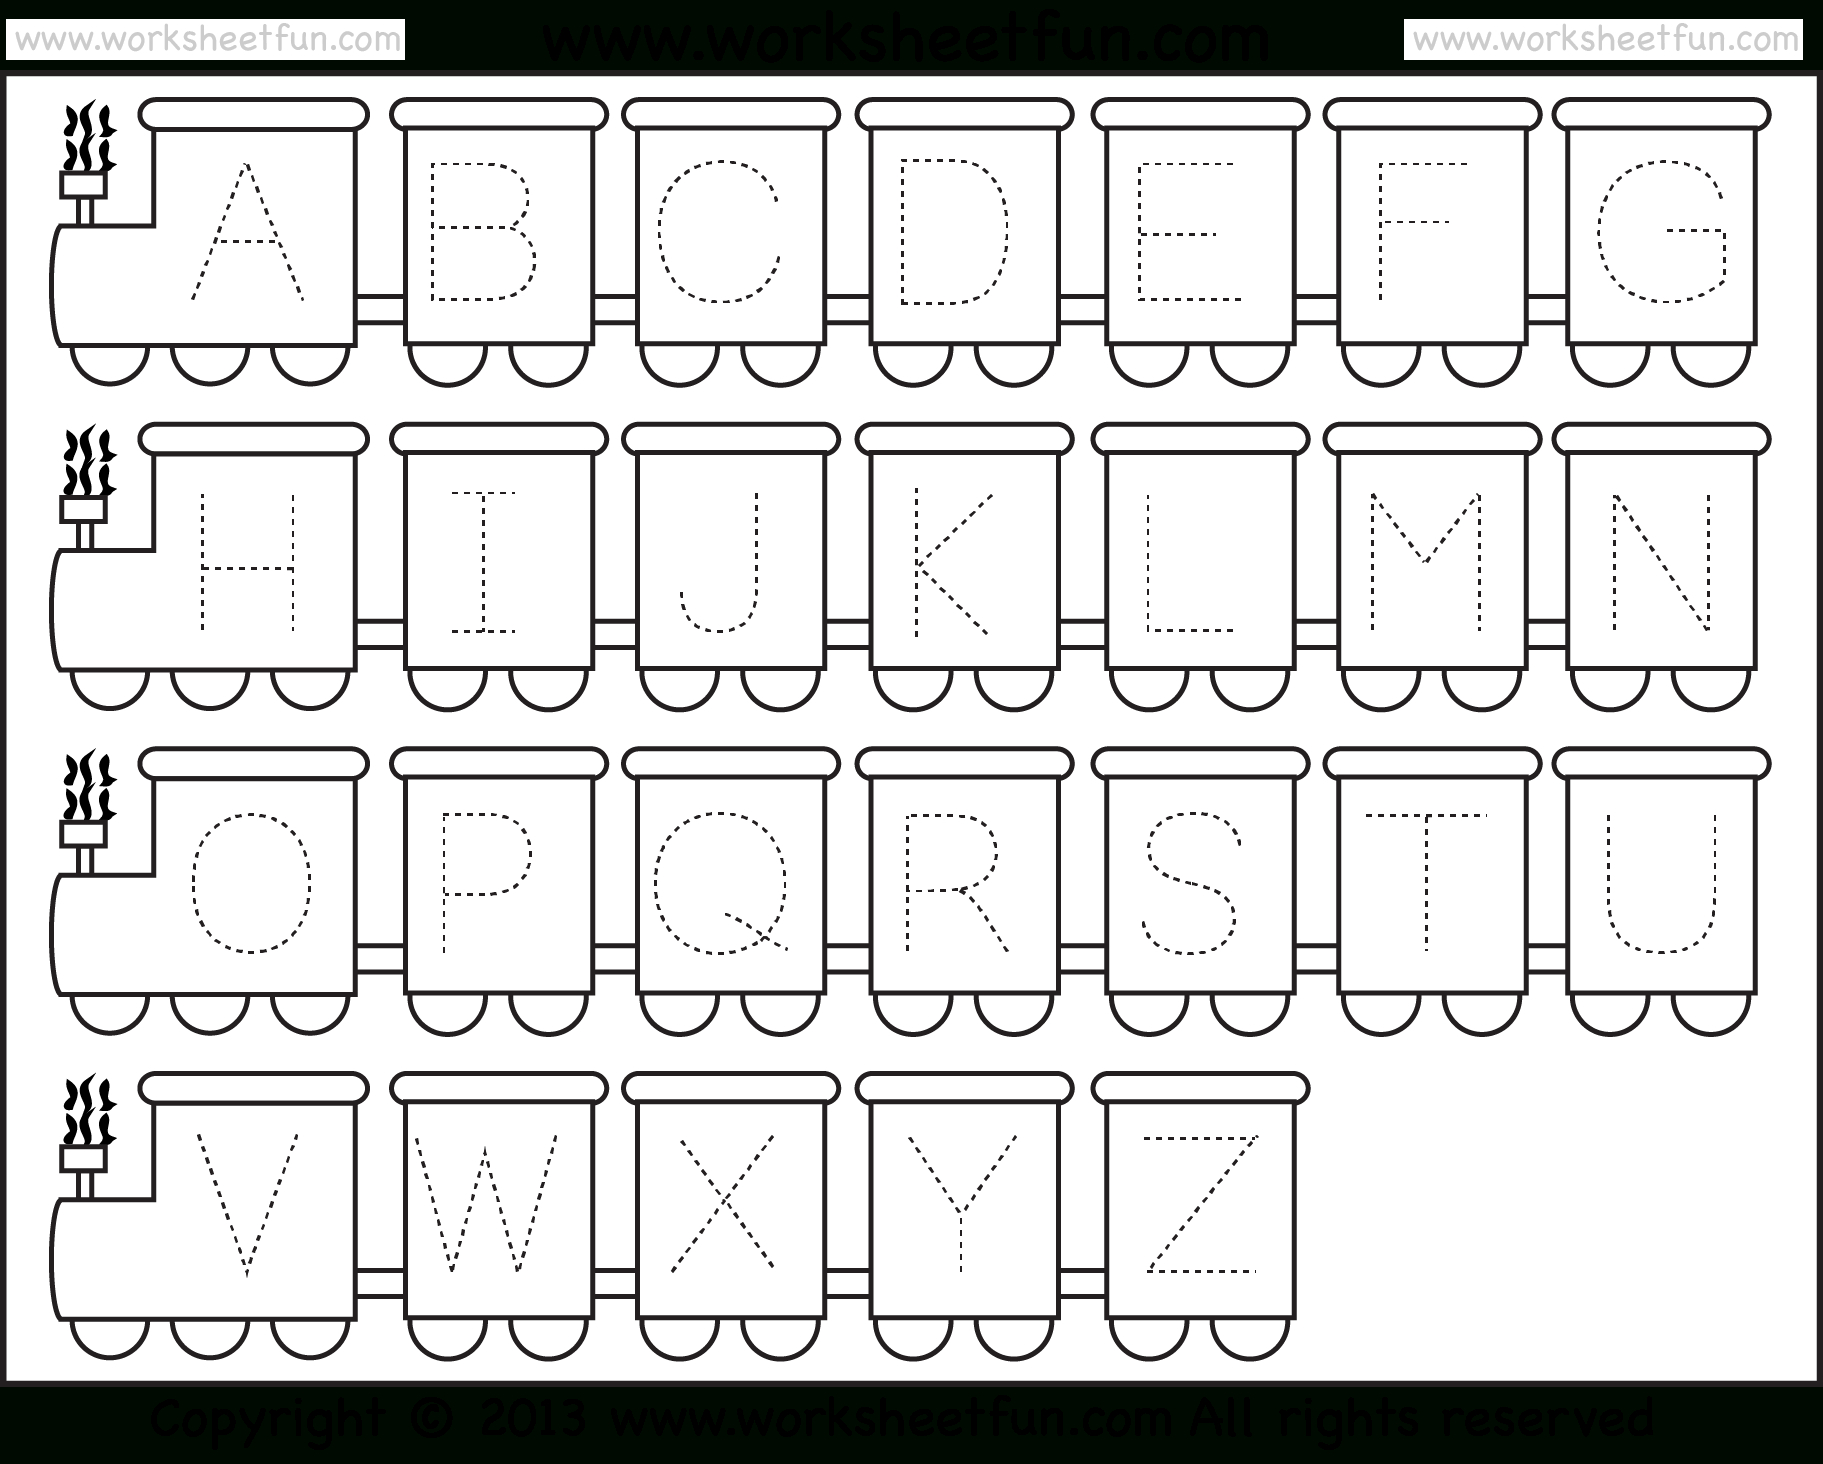 Letter Tracing Worksheet – Train Theme / Free Printable Worksheets - Free Printable Letter Tracing